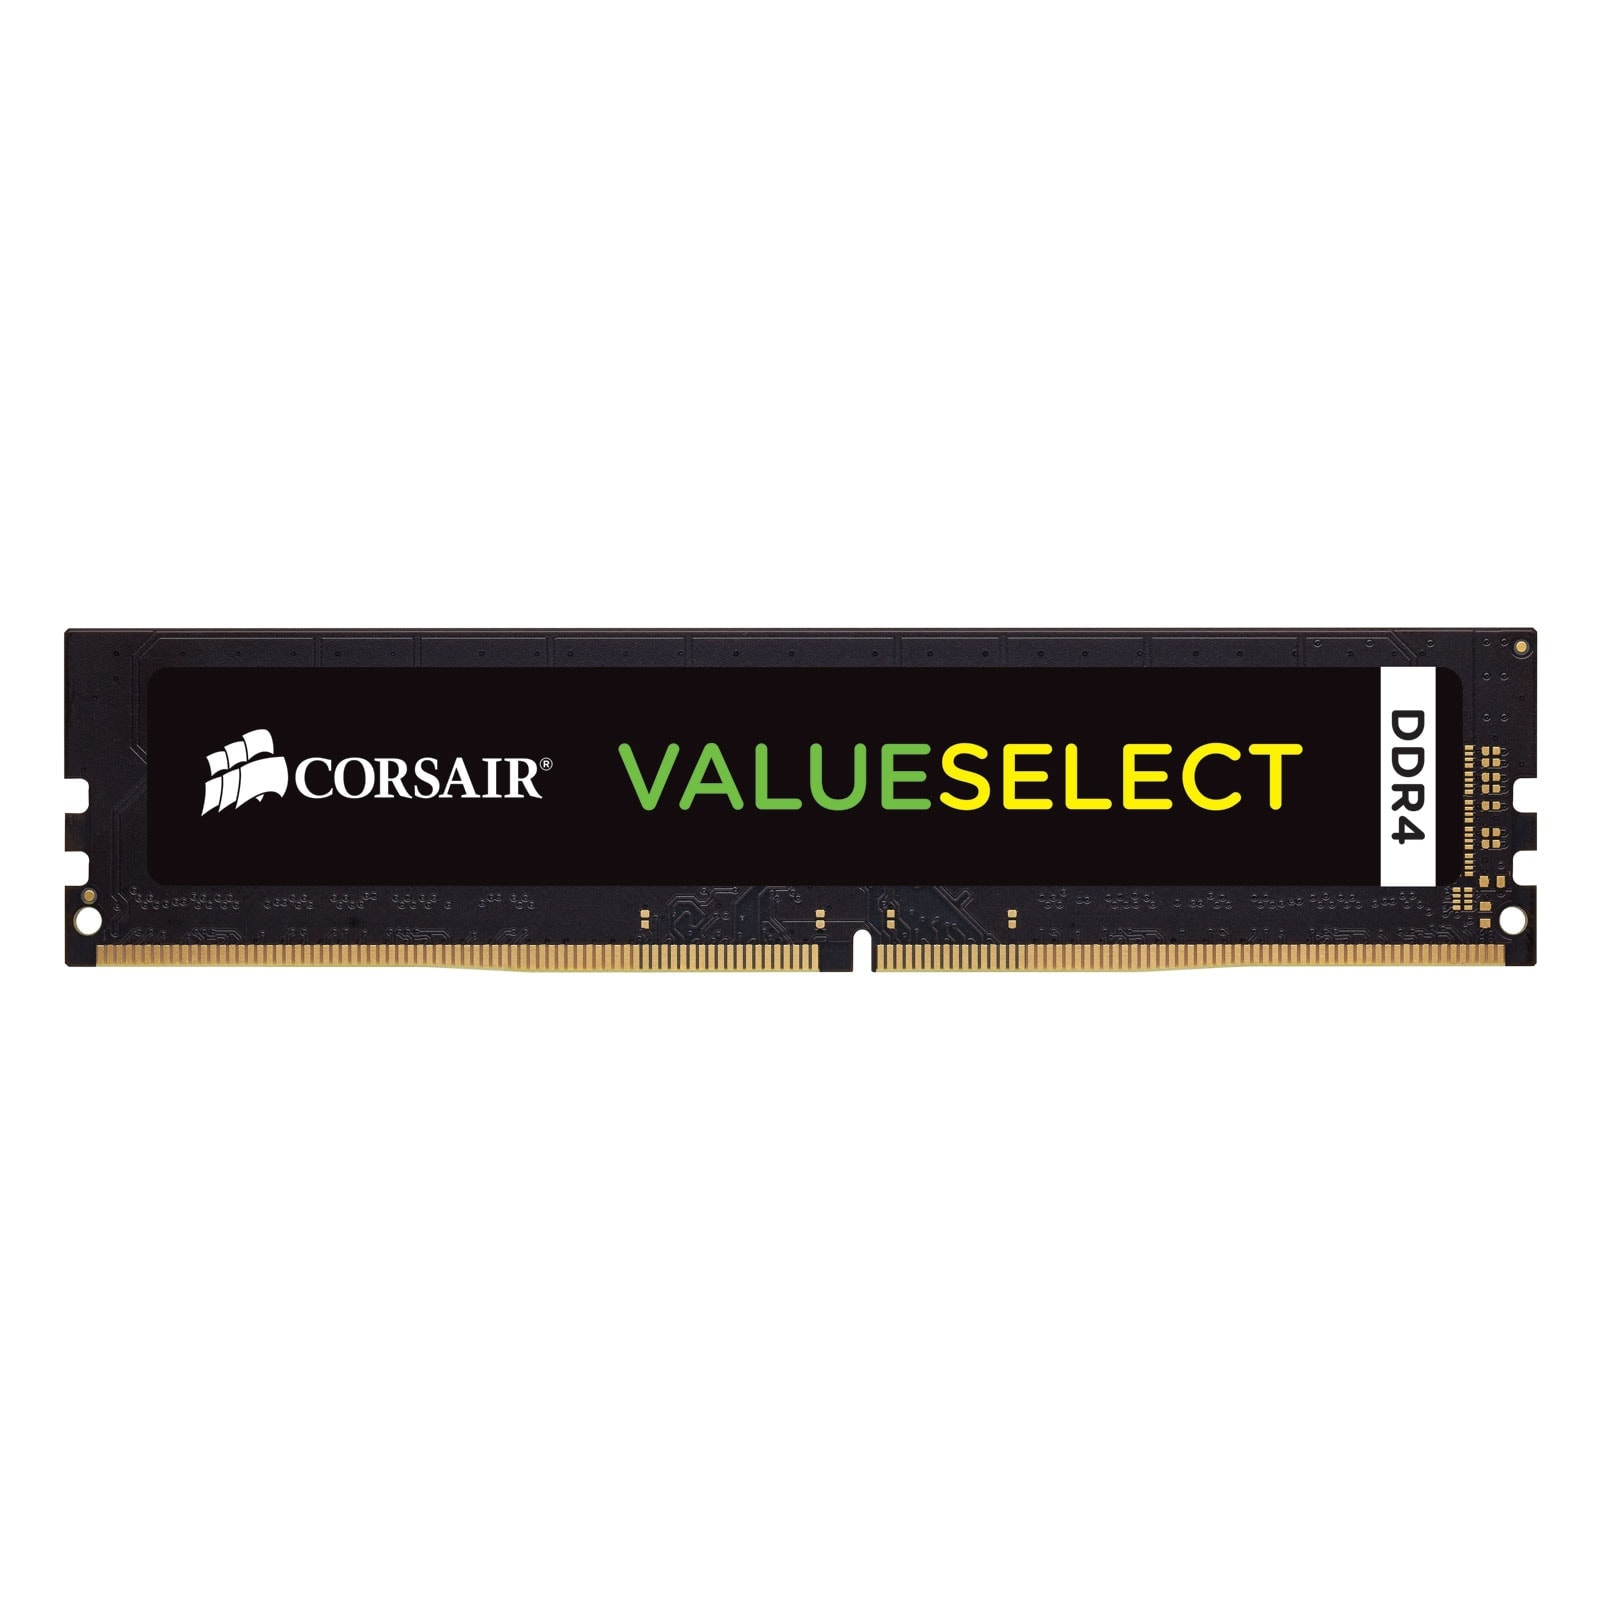 Corsair Value Select CMV16GX4M1A2133C15 (CMV16GX4M1A2133C15) - Achat / Vente Mémoire PC sur Cybertek.fr - 0